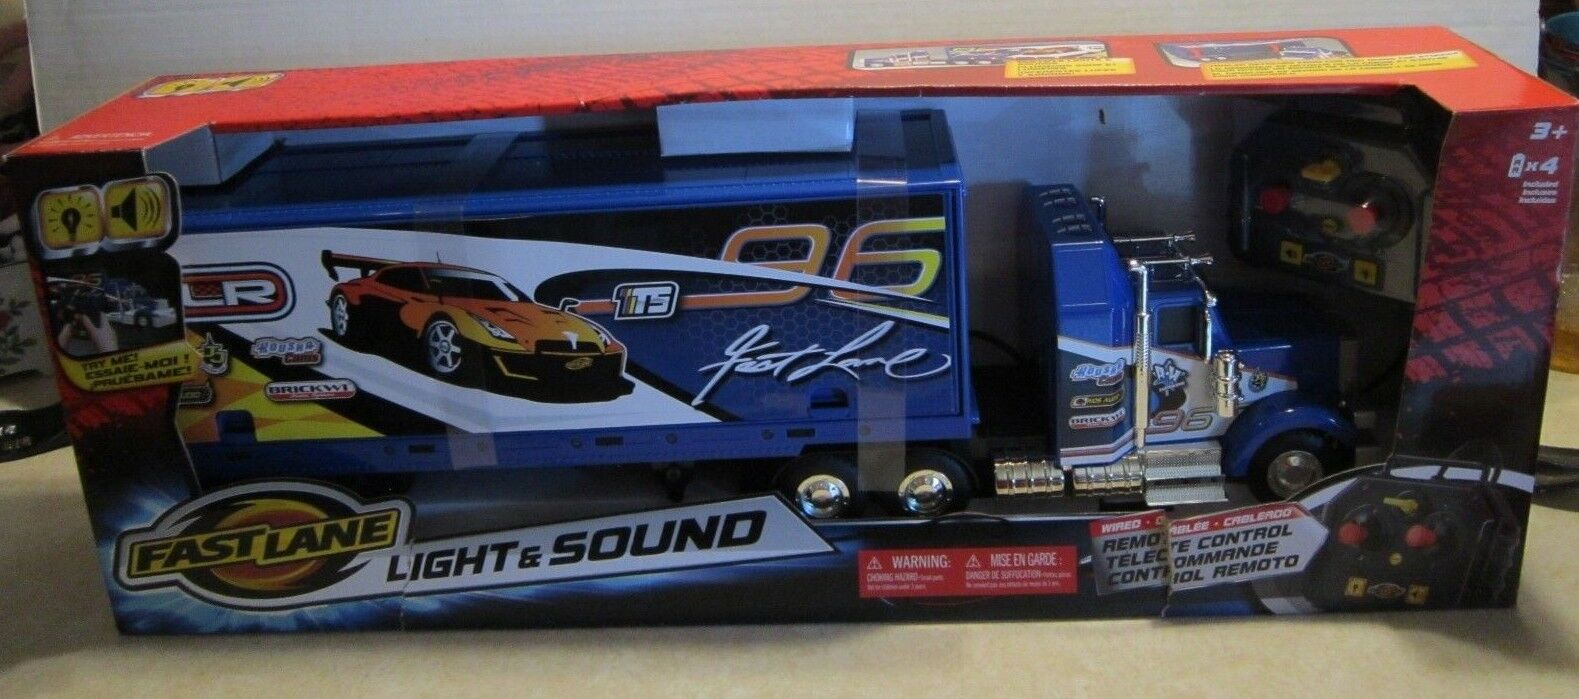 Fast Lane Lights & Sounds Remote Control RC Big Rig MIB NEW Works  F801